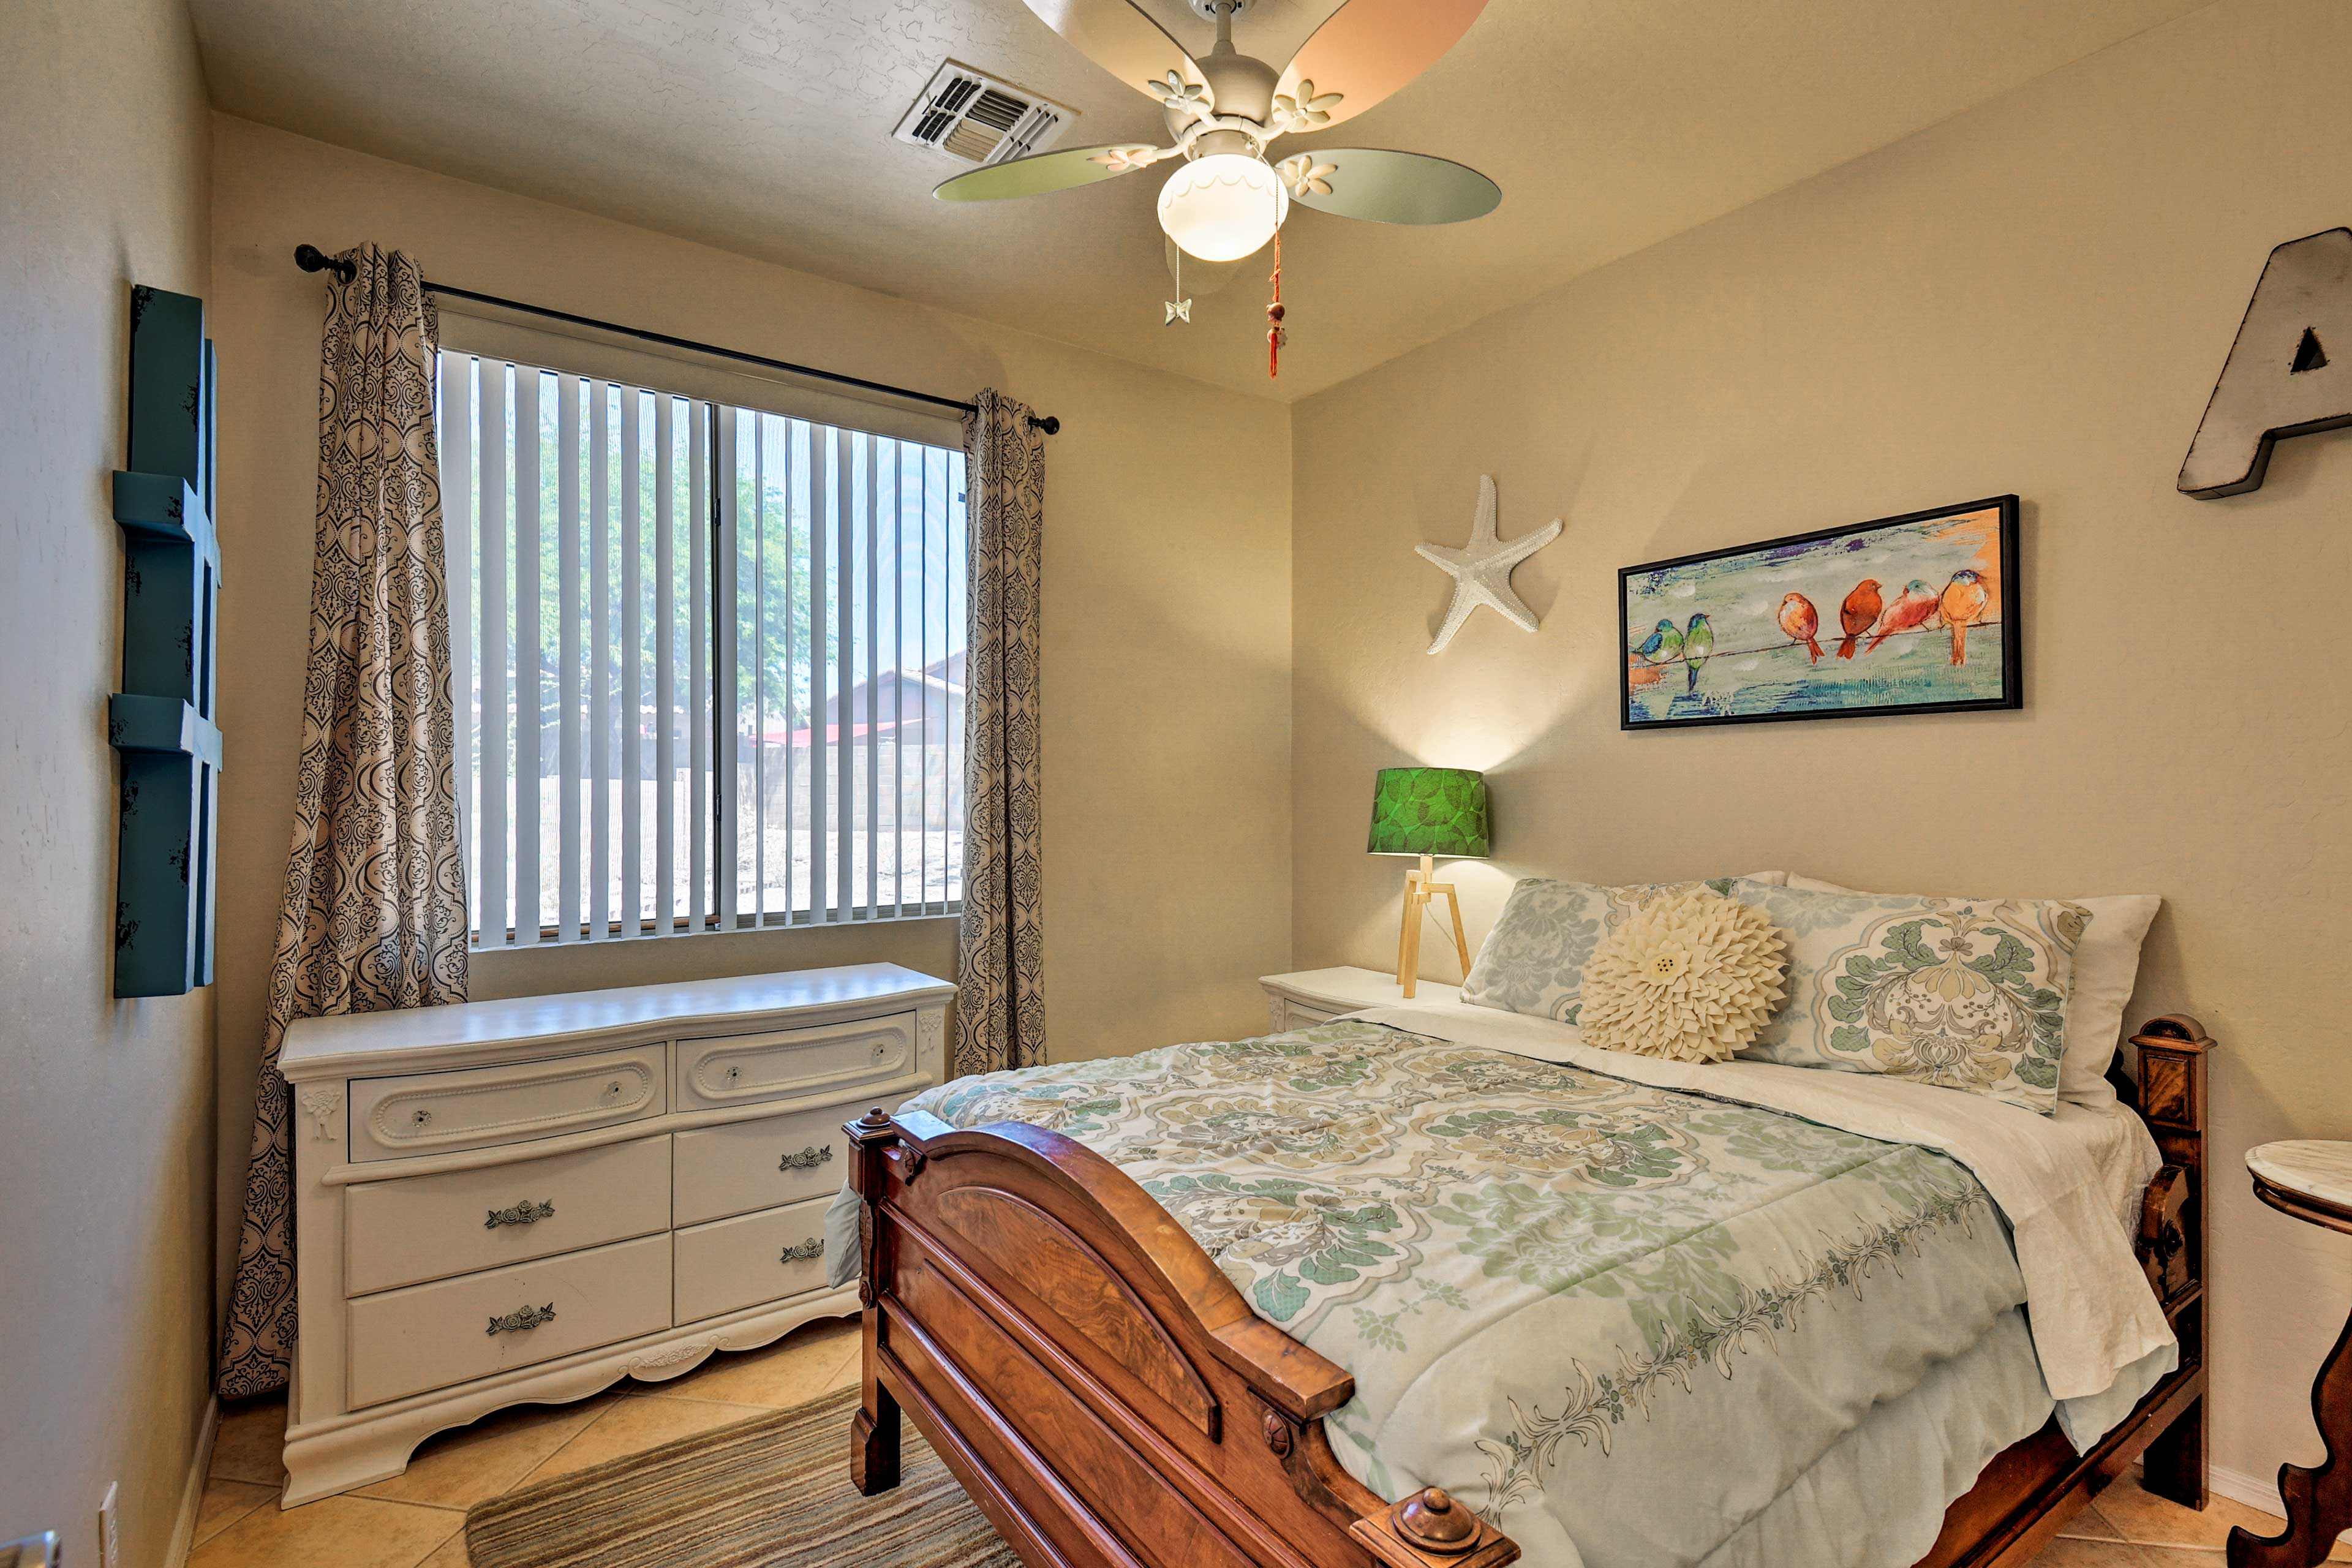 The third bedroom has a full-sized bed.